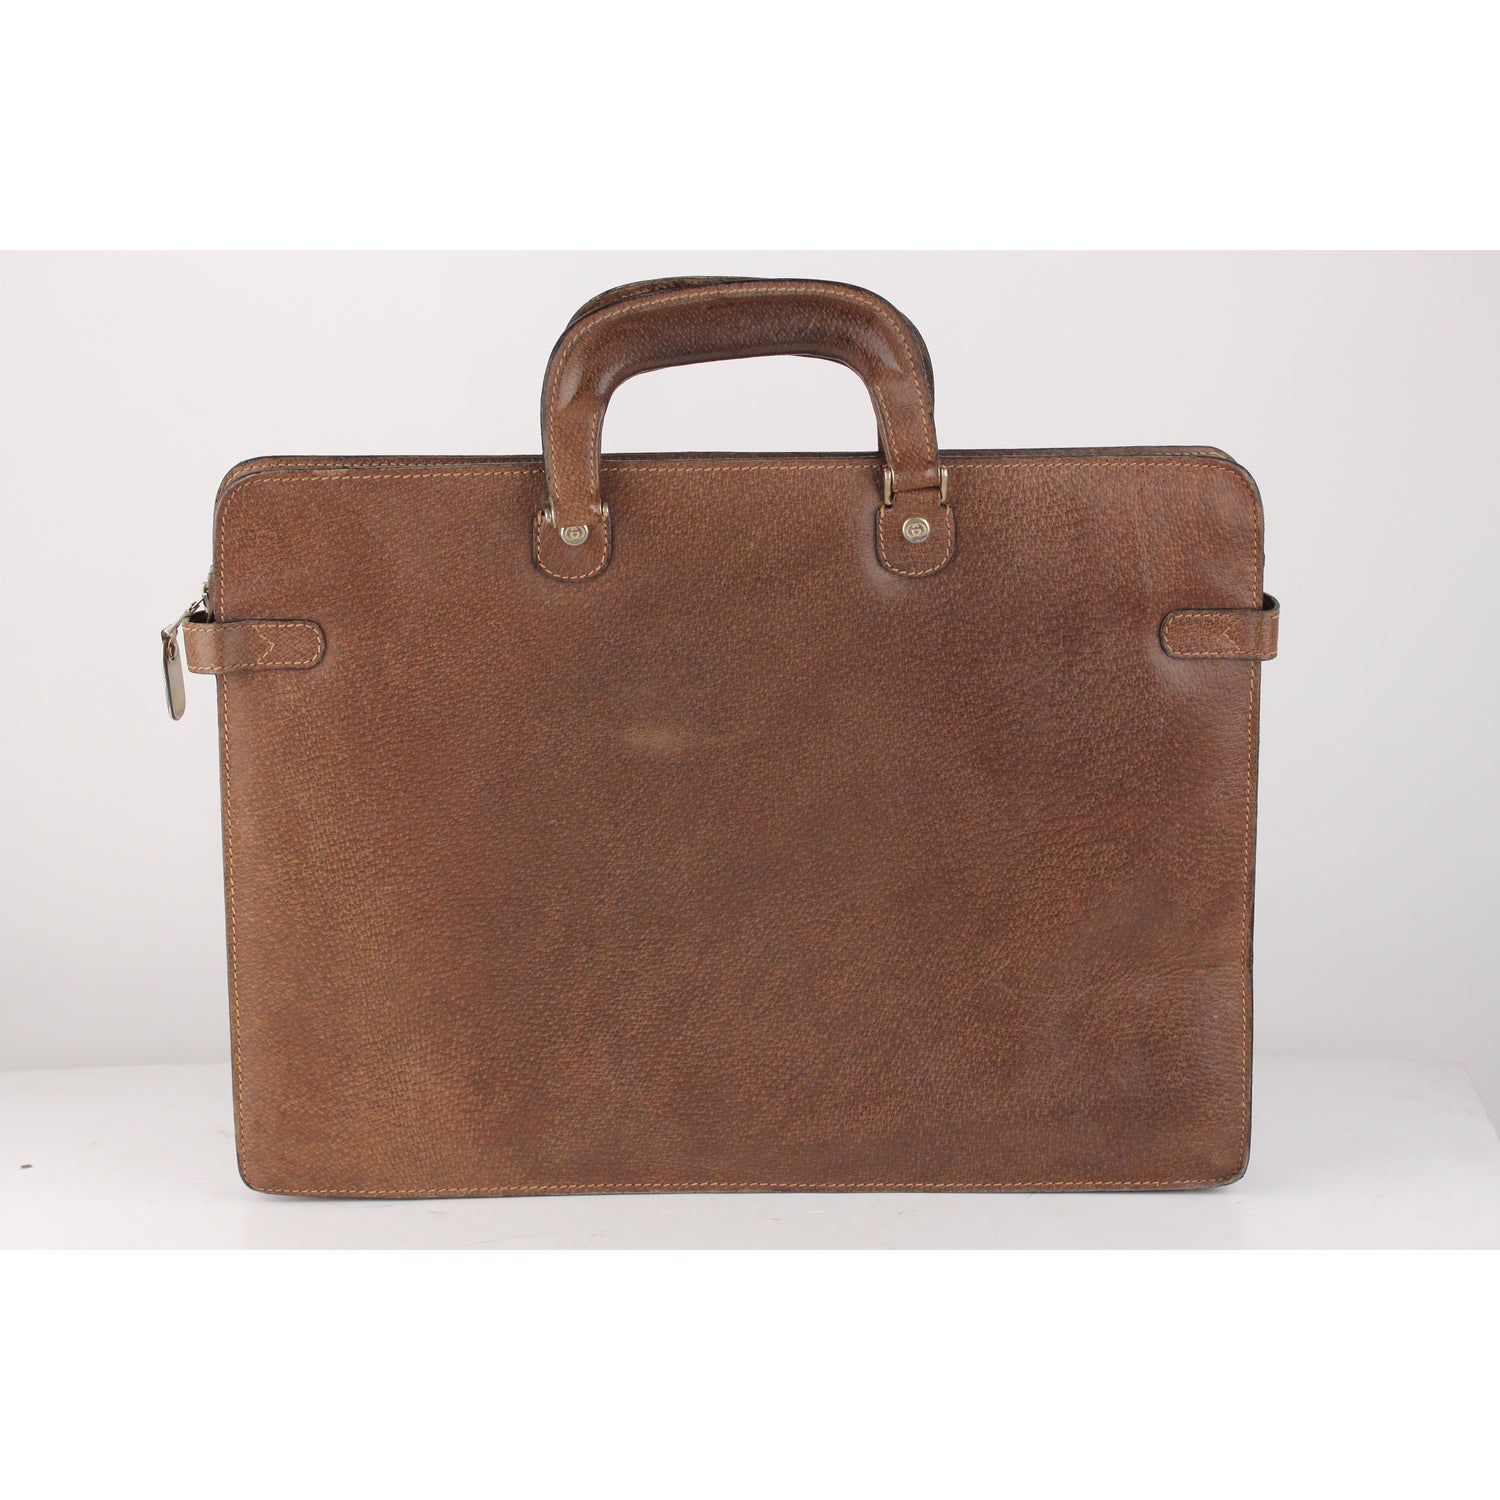 9b18faaca Gucci Vintage Tan Leather Briefcase Work Business Bag at 1stdibs